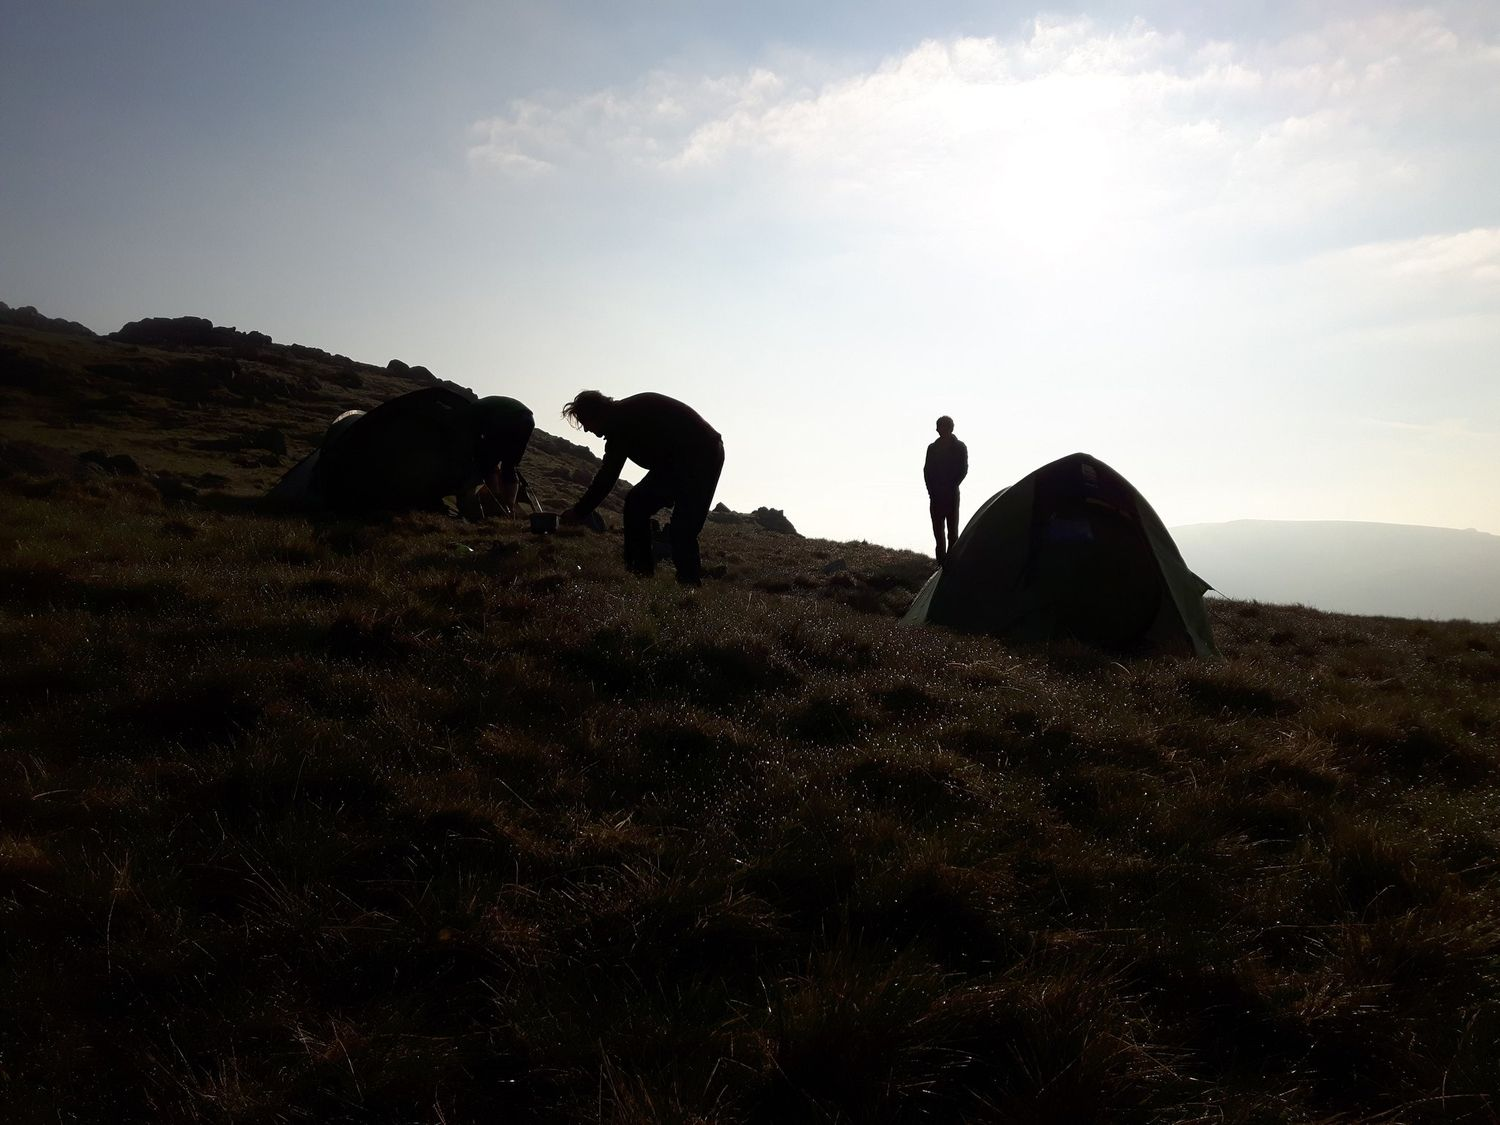 Wild camping on a Mountain Leader assessment course - Chris Ensoll Mountain Guide